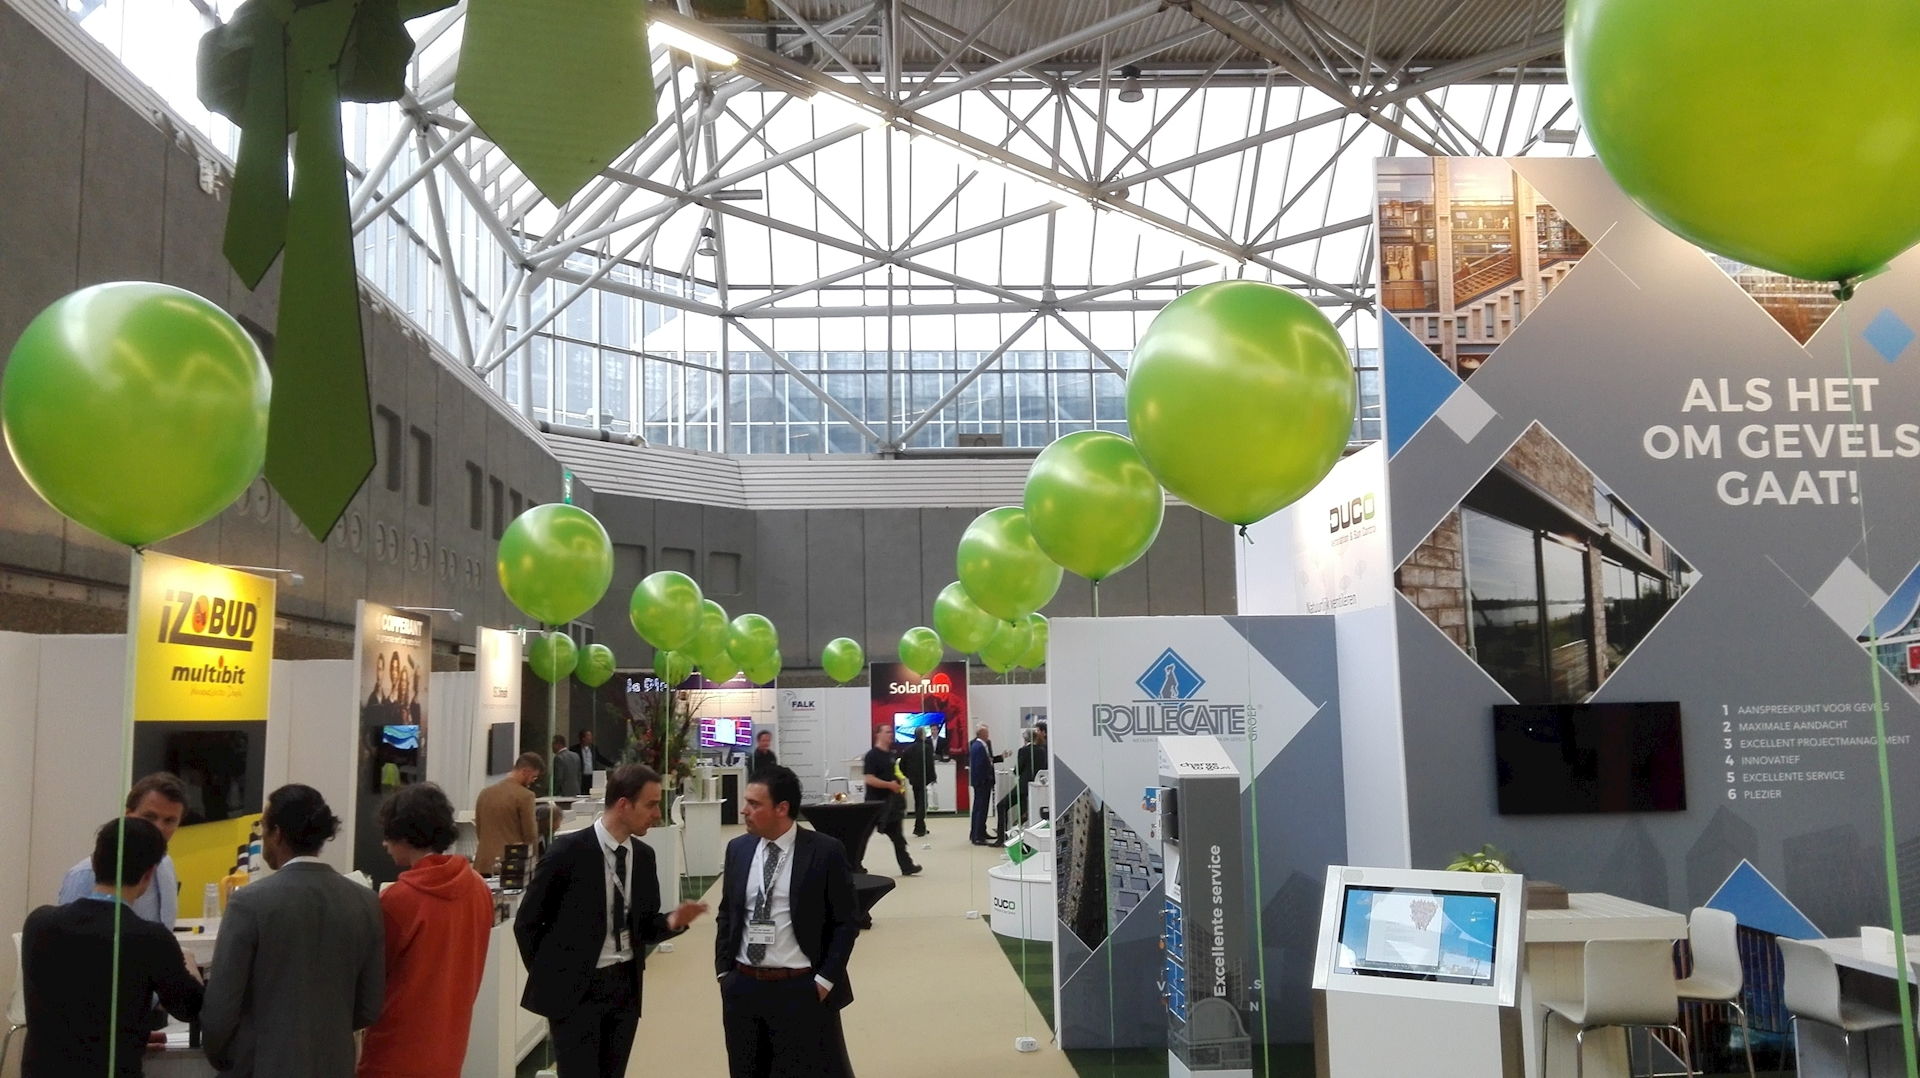 building Holland 2017 Rai Amsterdam reuze ballon decoraties